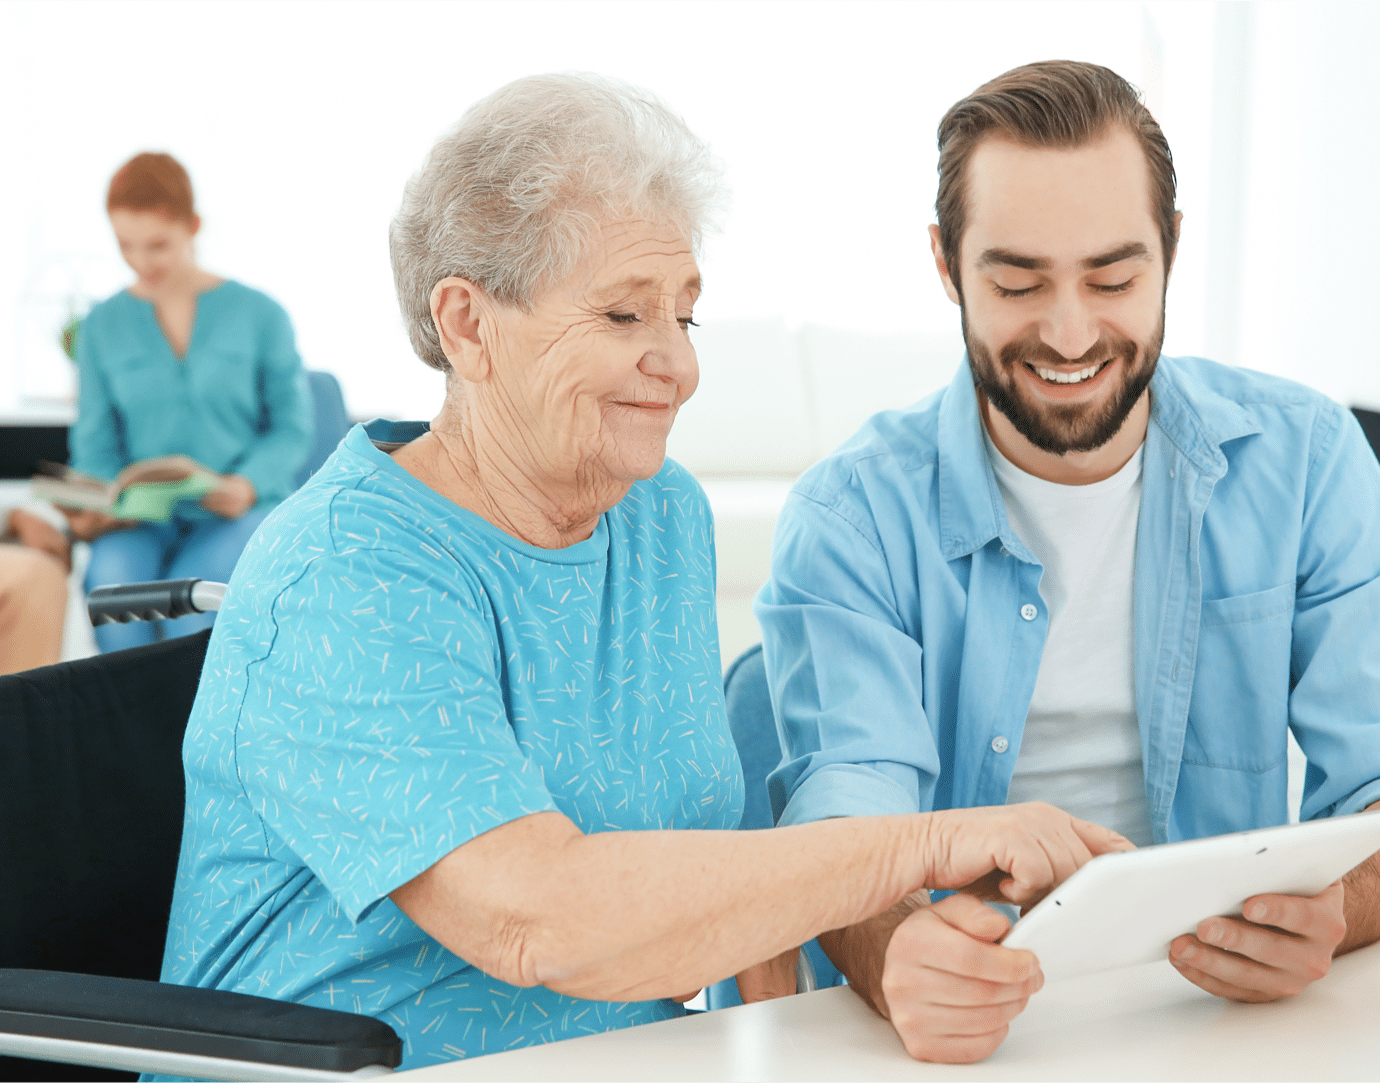 Older woman using tablet with younger man